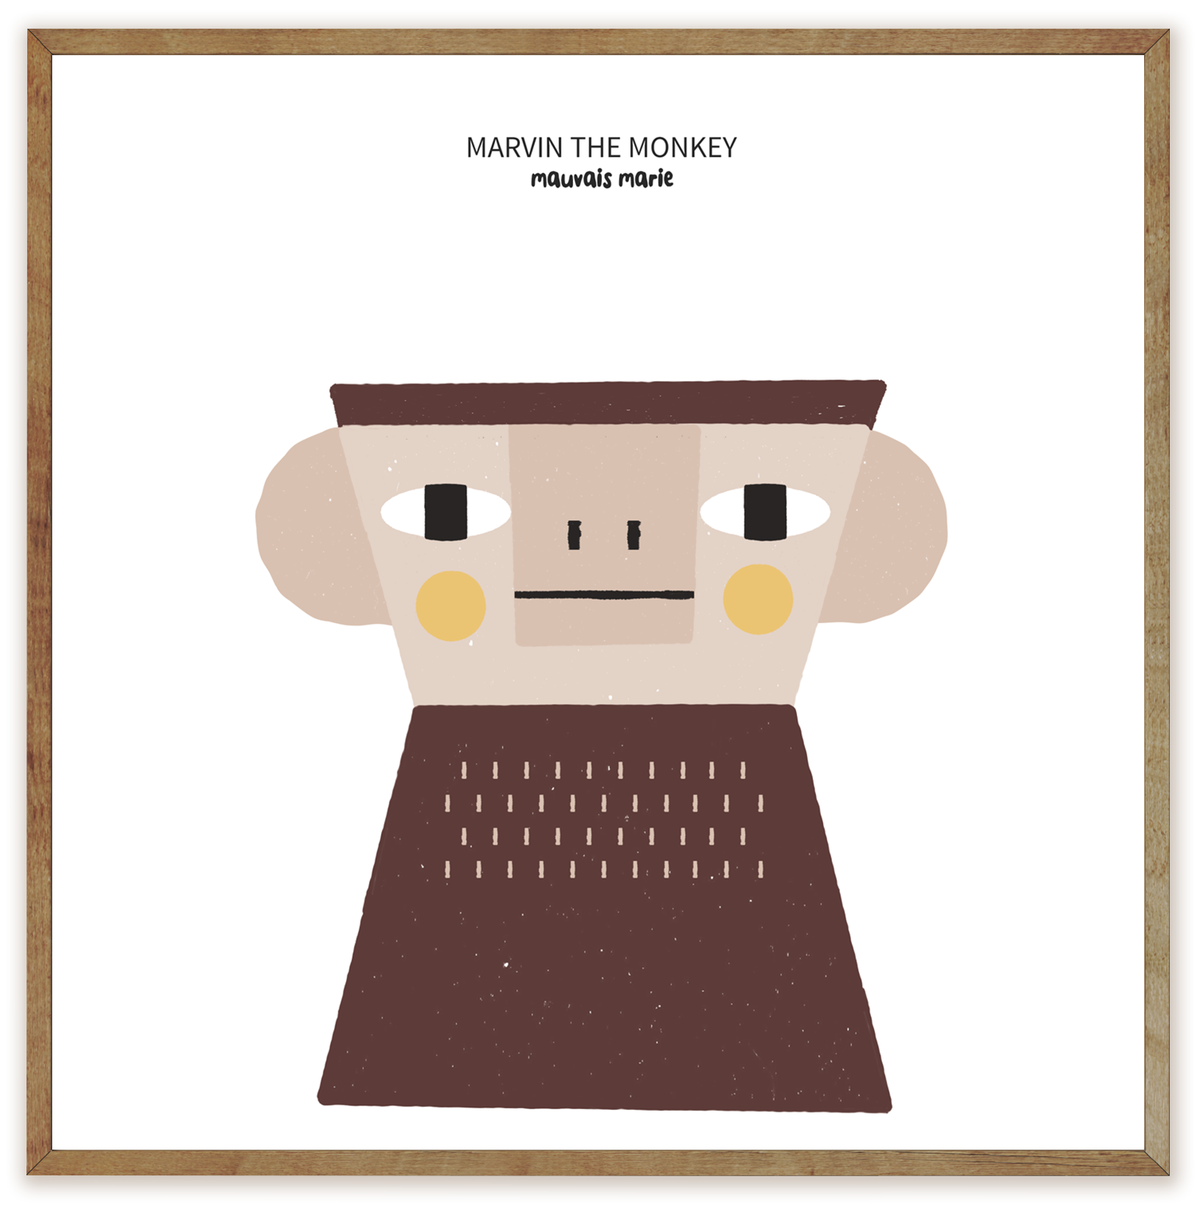 Image of Marvin the Monkey print